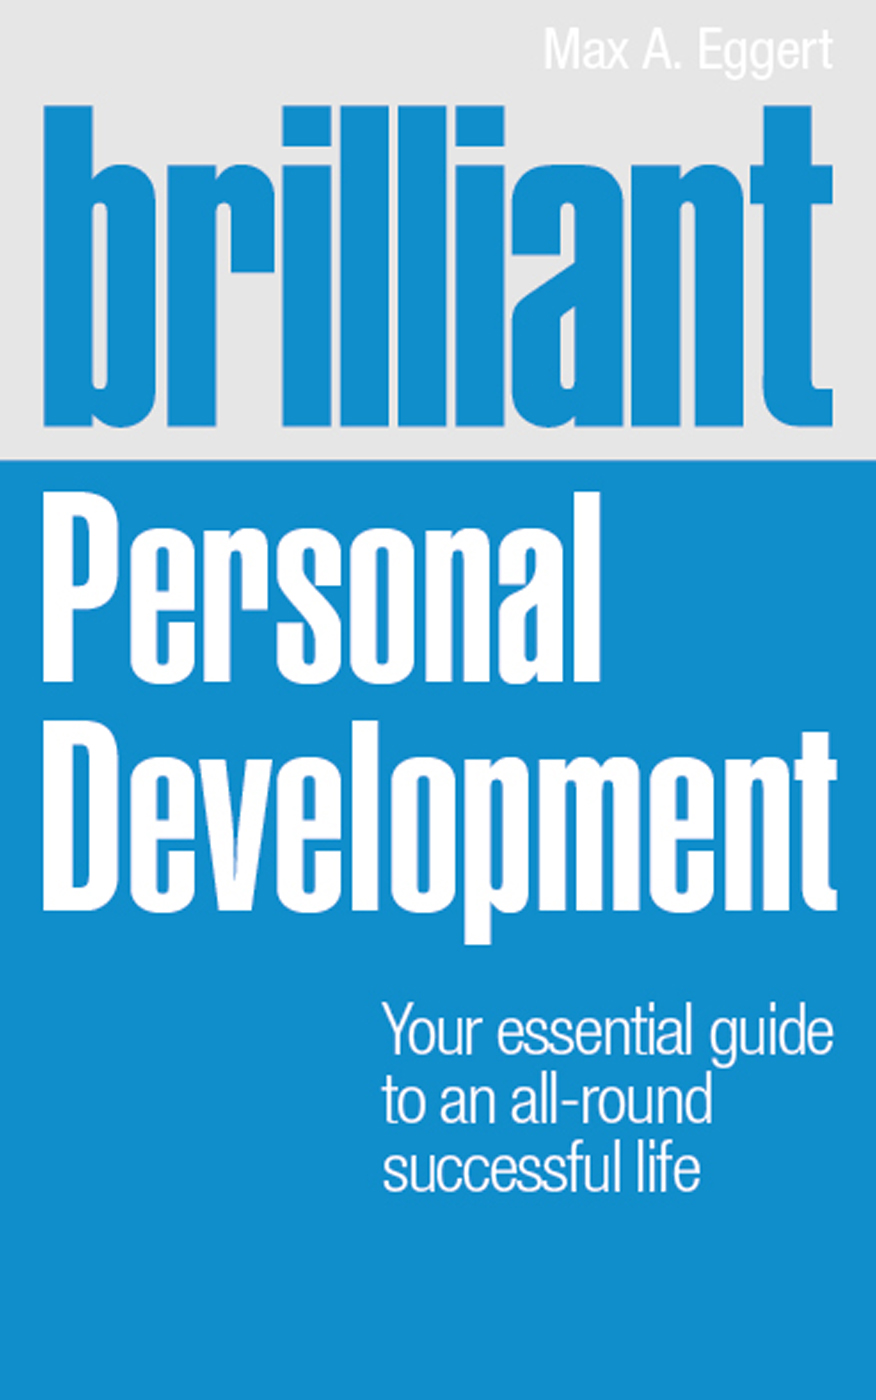 Brilliant Personal Development